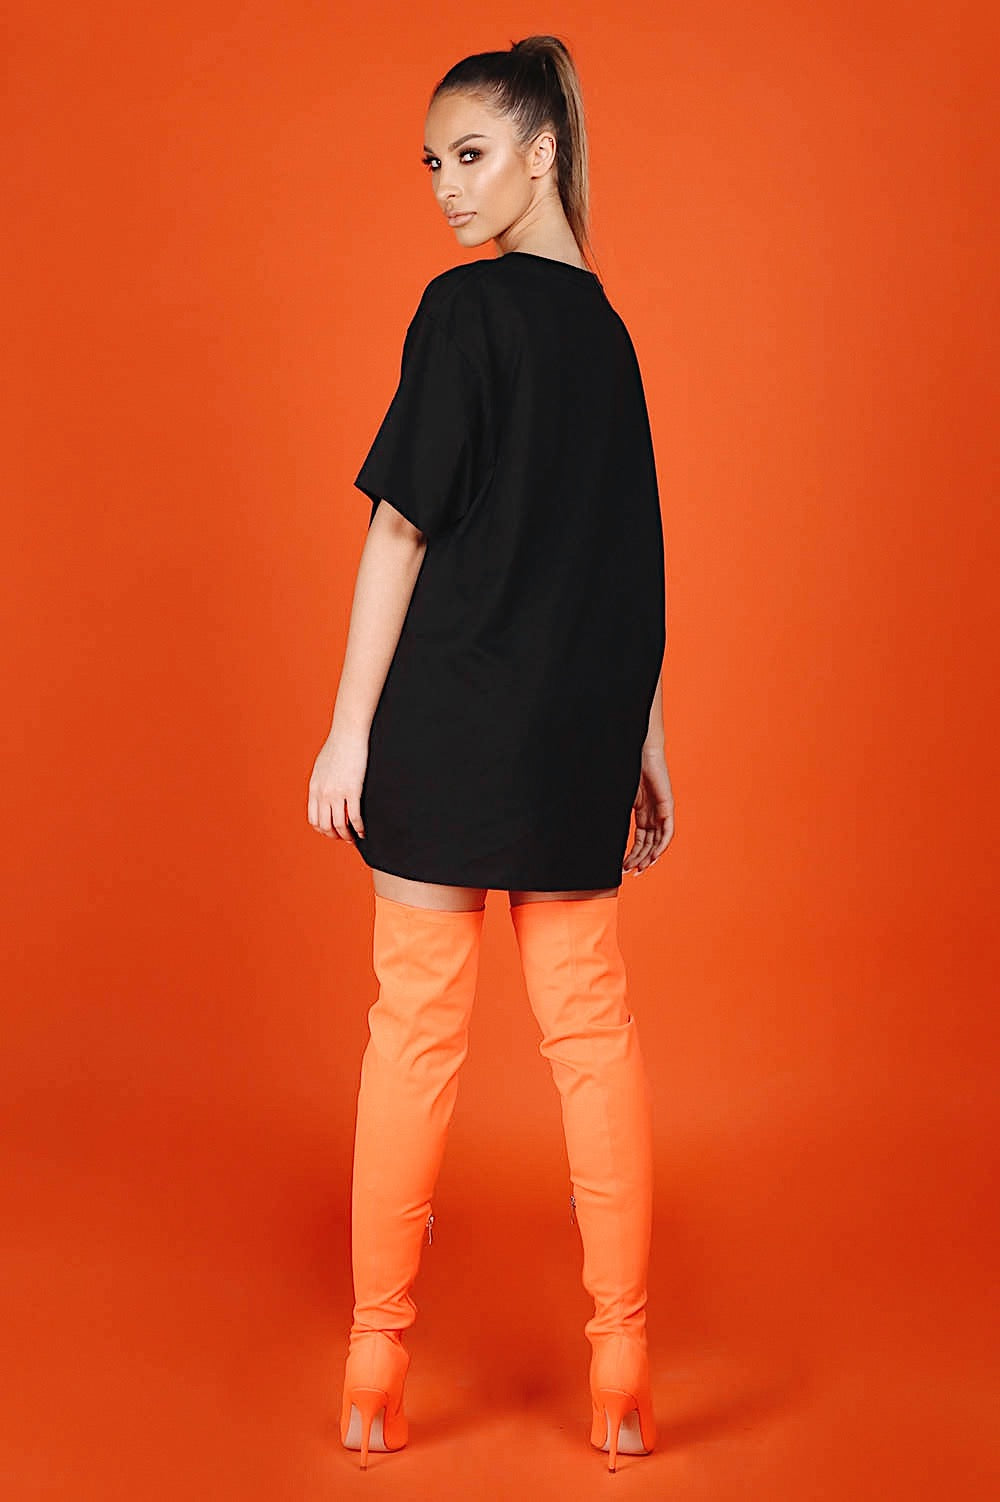 ARCTIC T SHIRT - BLACK/ ORANGE LADIES (PRE-ORDER)